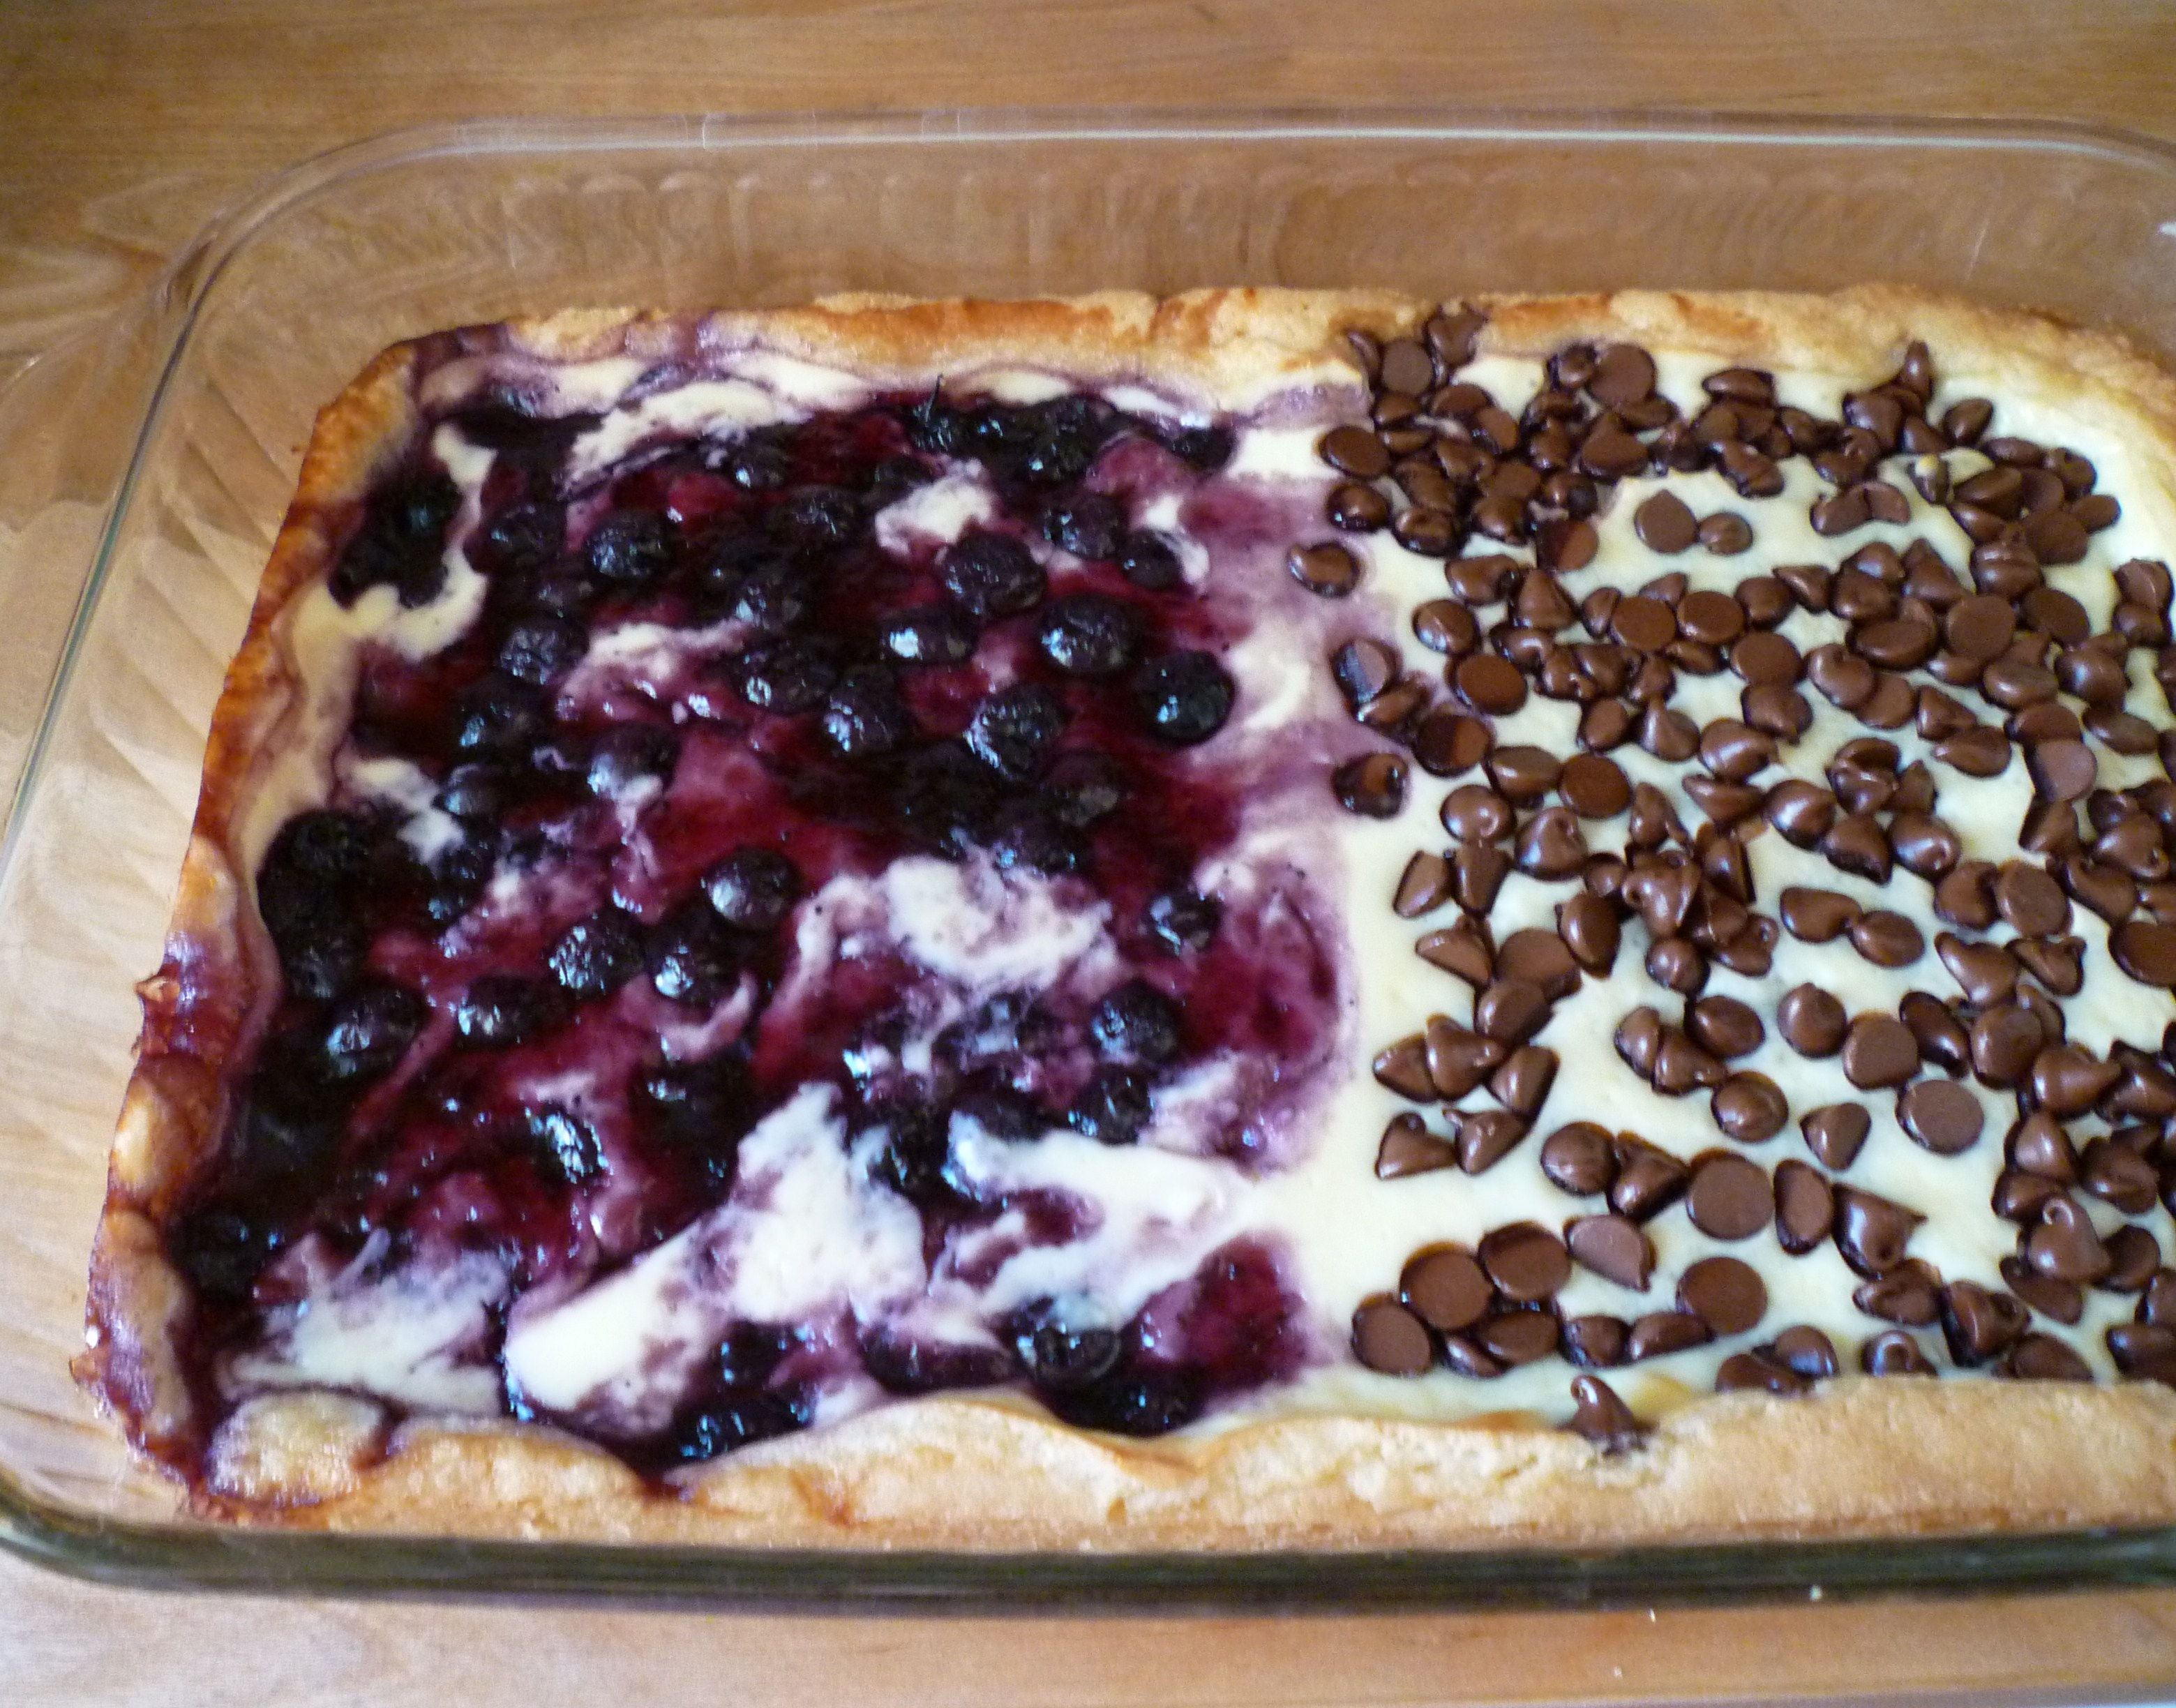 The Original Recipe Called For Blueberry Pie Filling Only I Like To Add A Little Lemon Zest In The Cream Cheese I Am Giving You The Recipe For The Way I